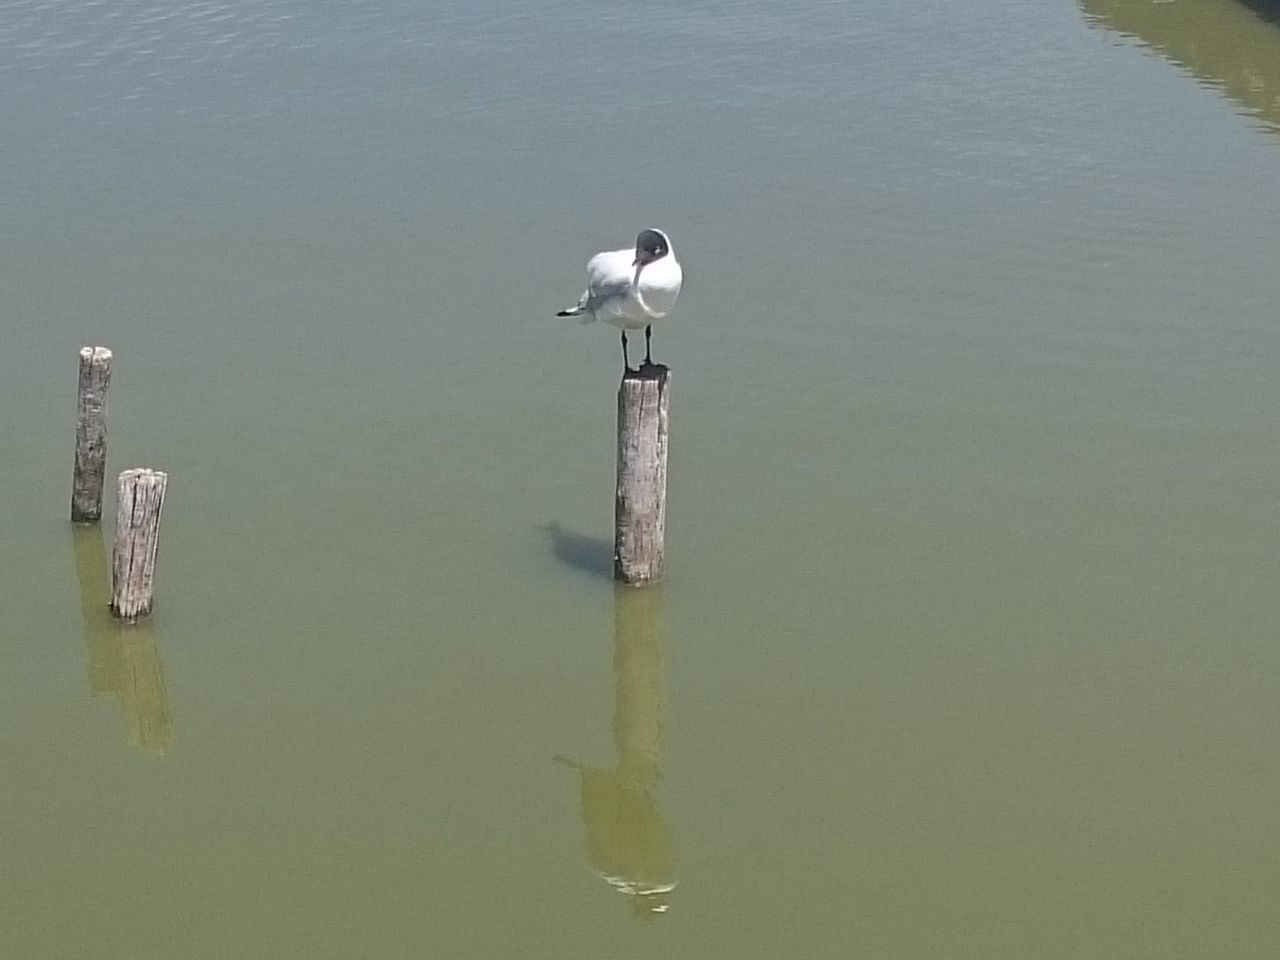 water, animals in the wild, animal themes, animal wildlife, day, waterfront, reflection, lake, bird, wooden post, high angle view, nature, one animal, no people, outdoors, beauty in nature, perching